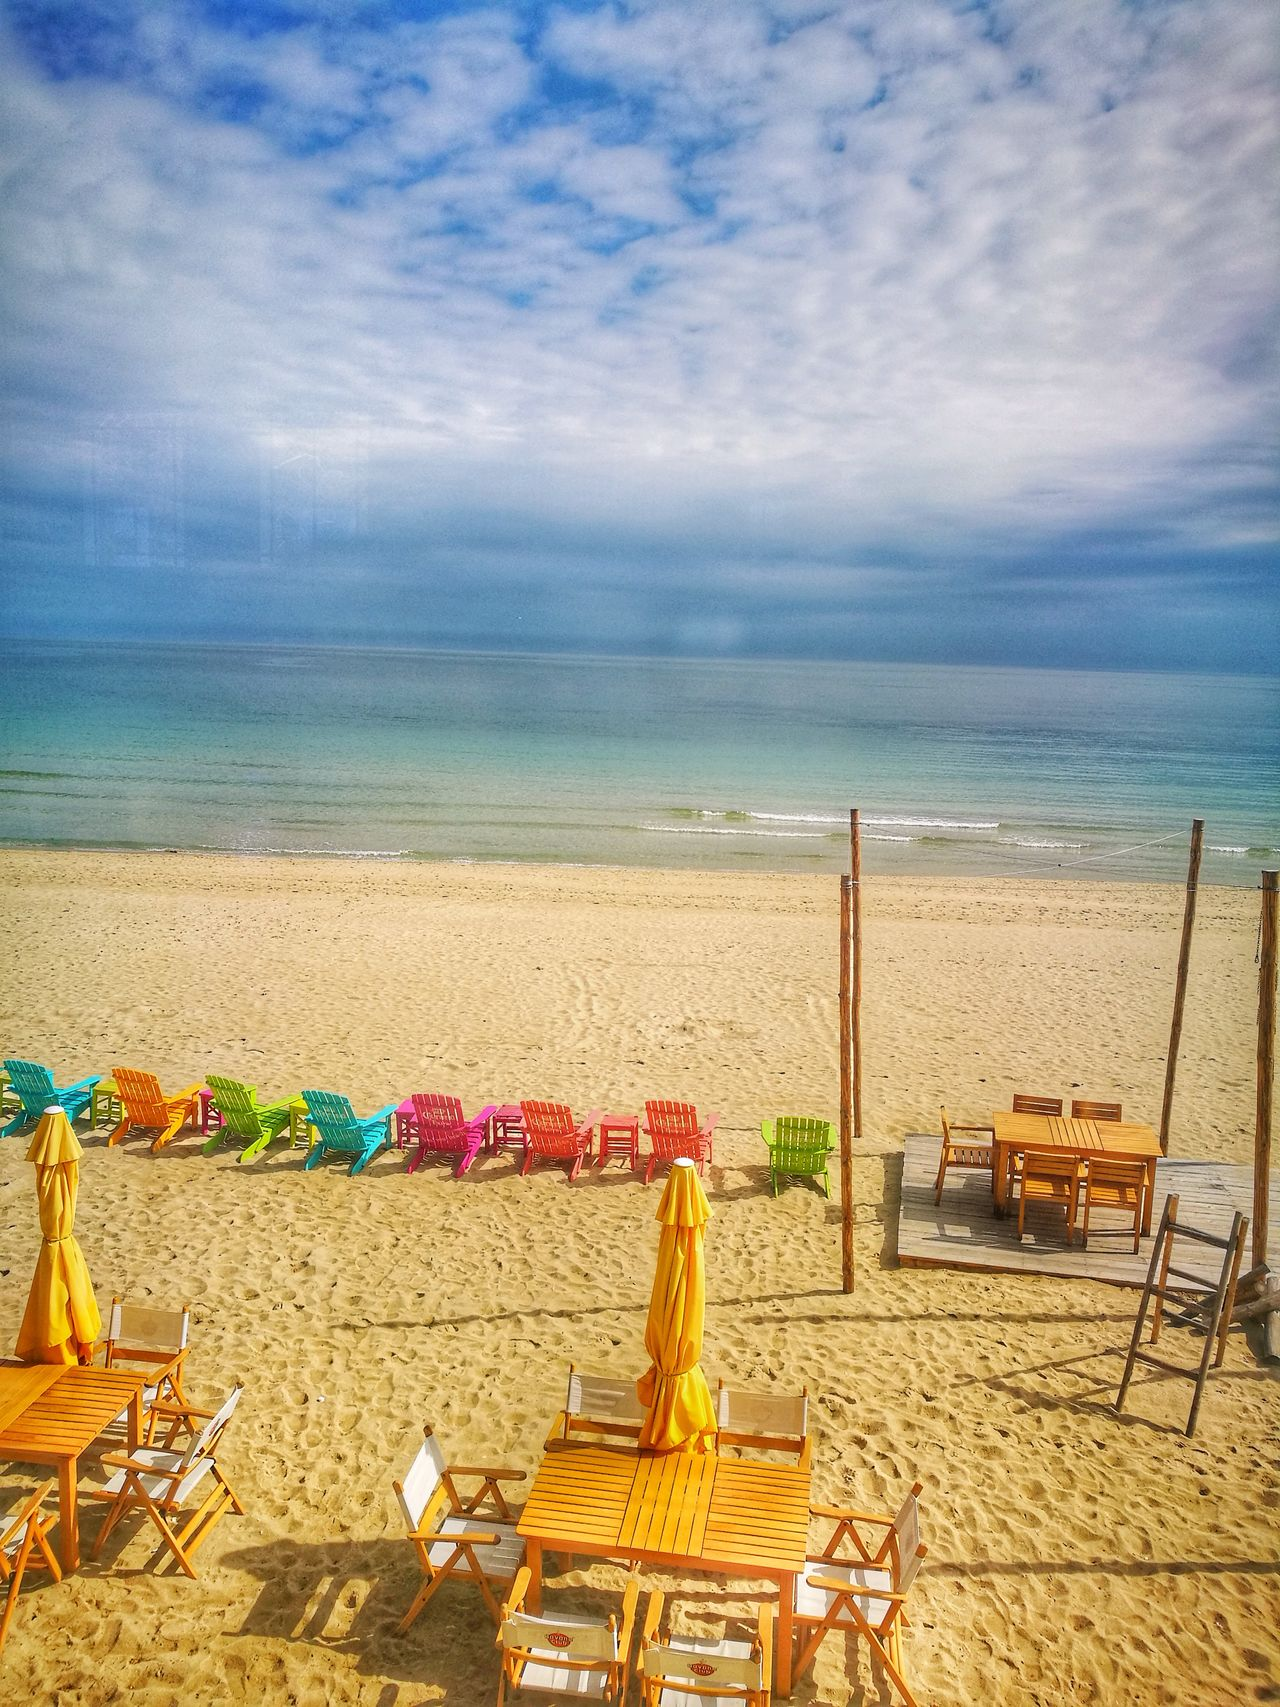 Sea Beach Sand Horizon Over Water Water Sky Vacations Outdoors Scenics Cloud - Sky No People Day Tranquil Scene Beauty In Nature Nature